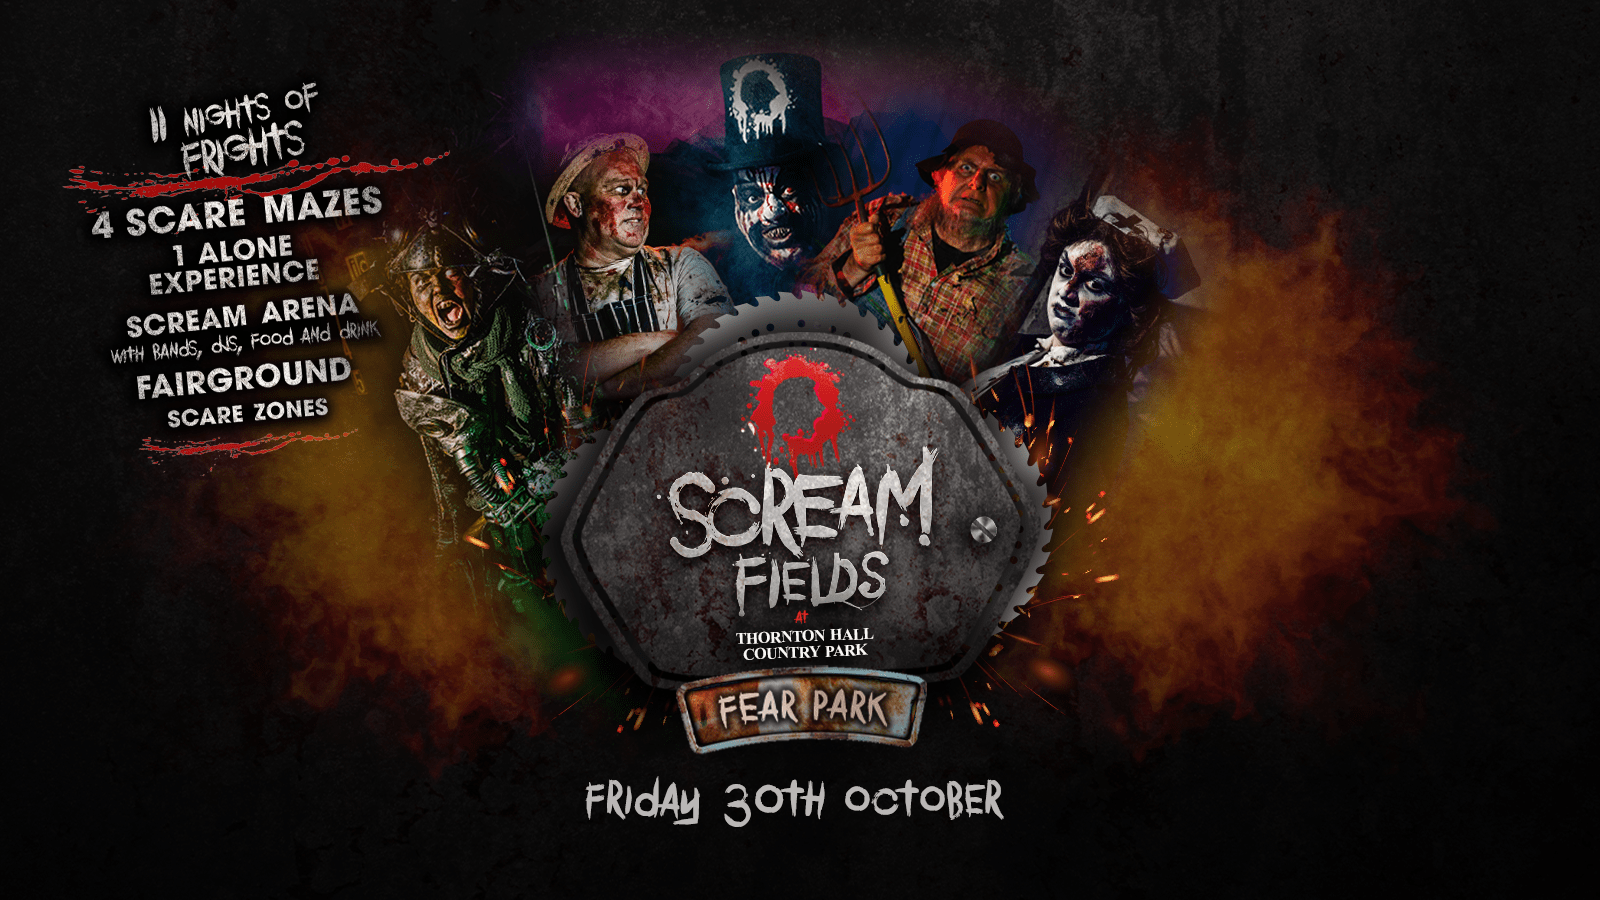 6.00PM – Screamfields: Friday 30th October 2020